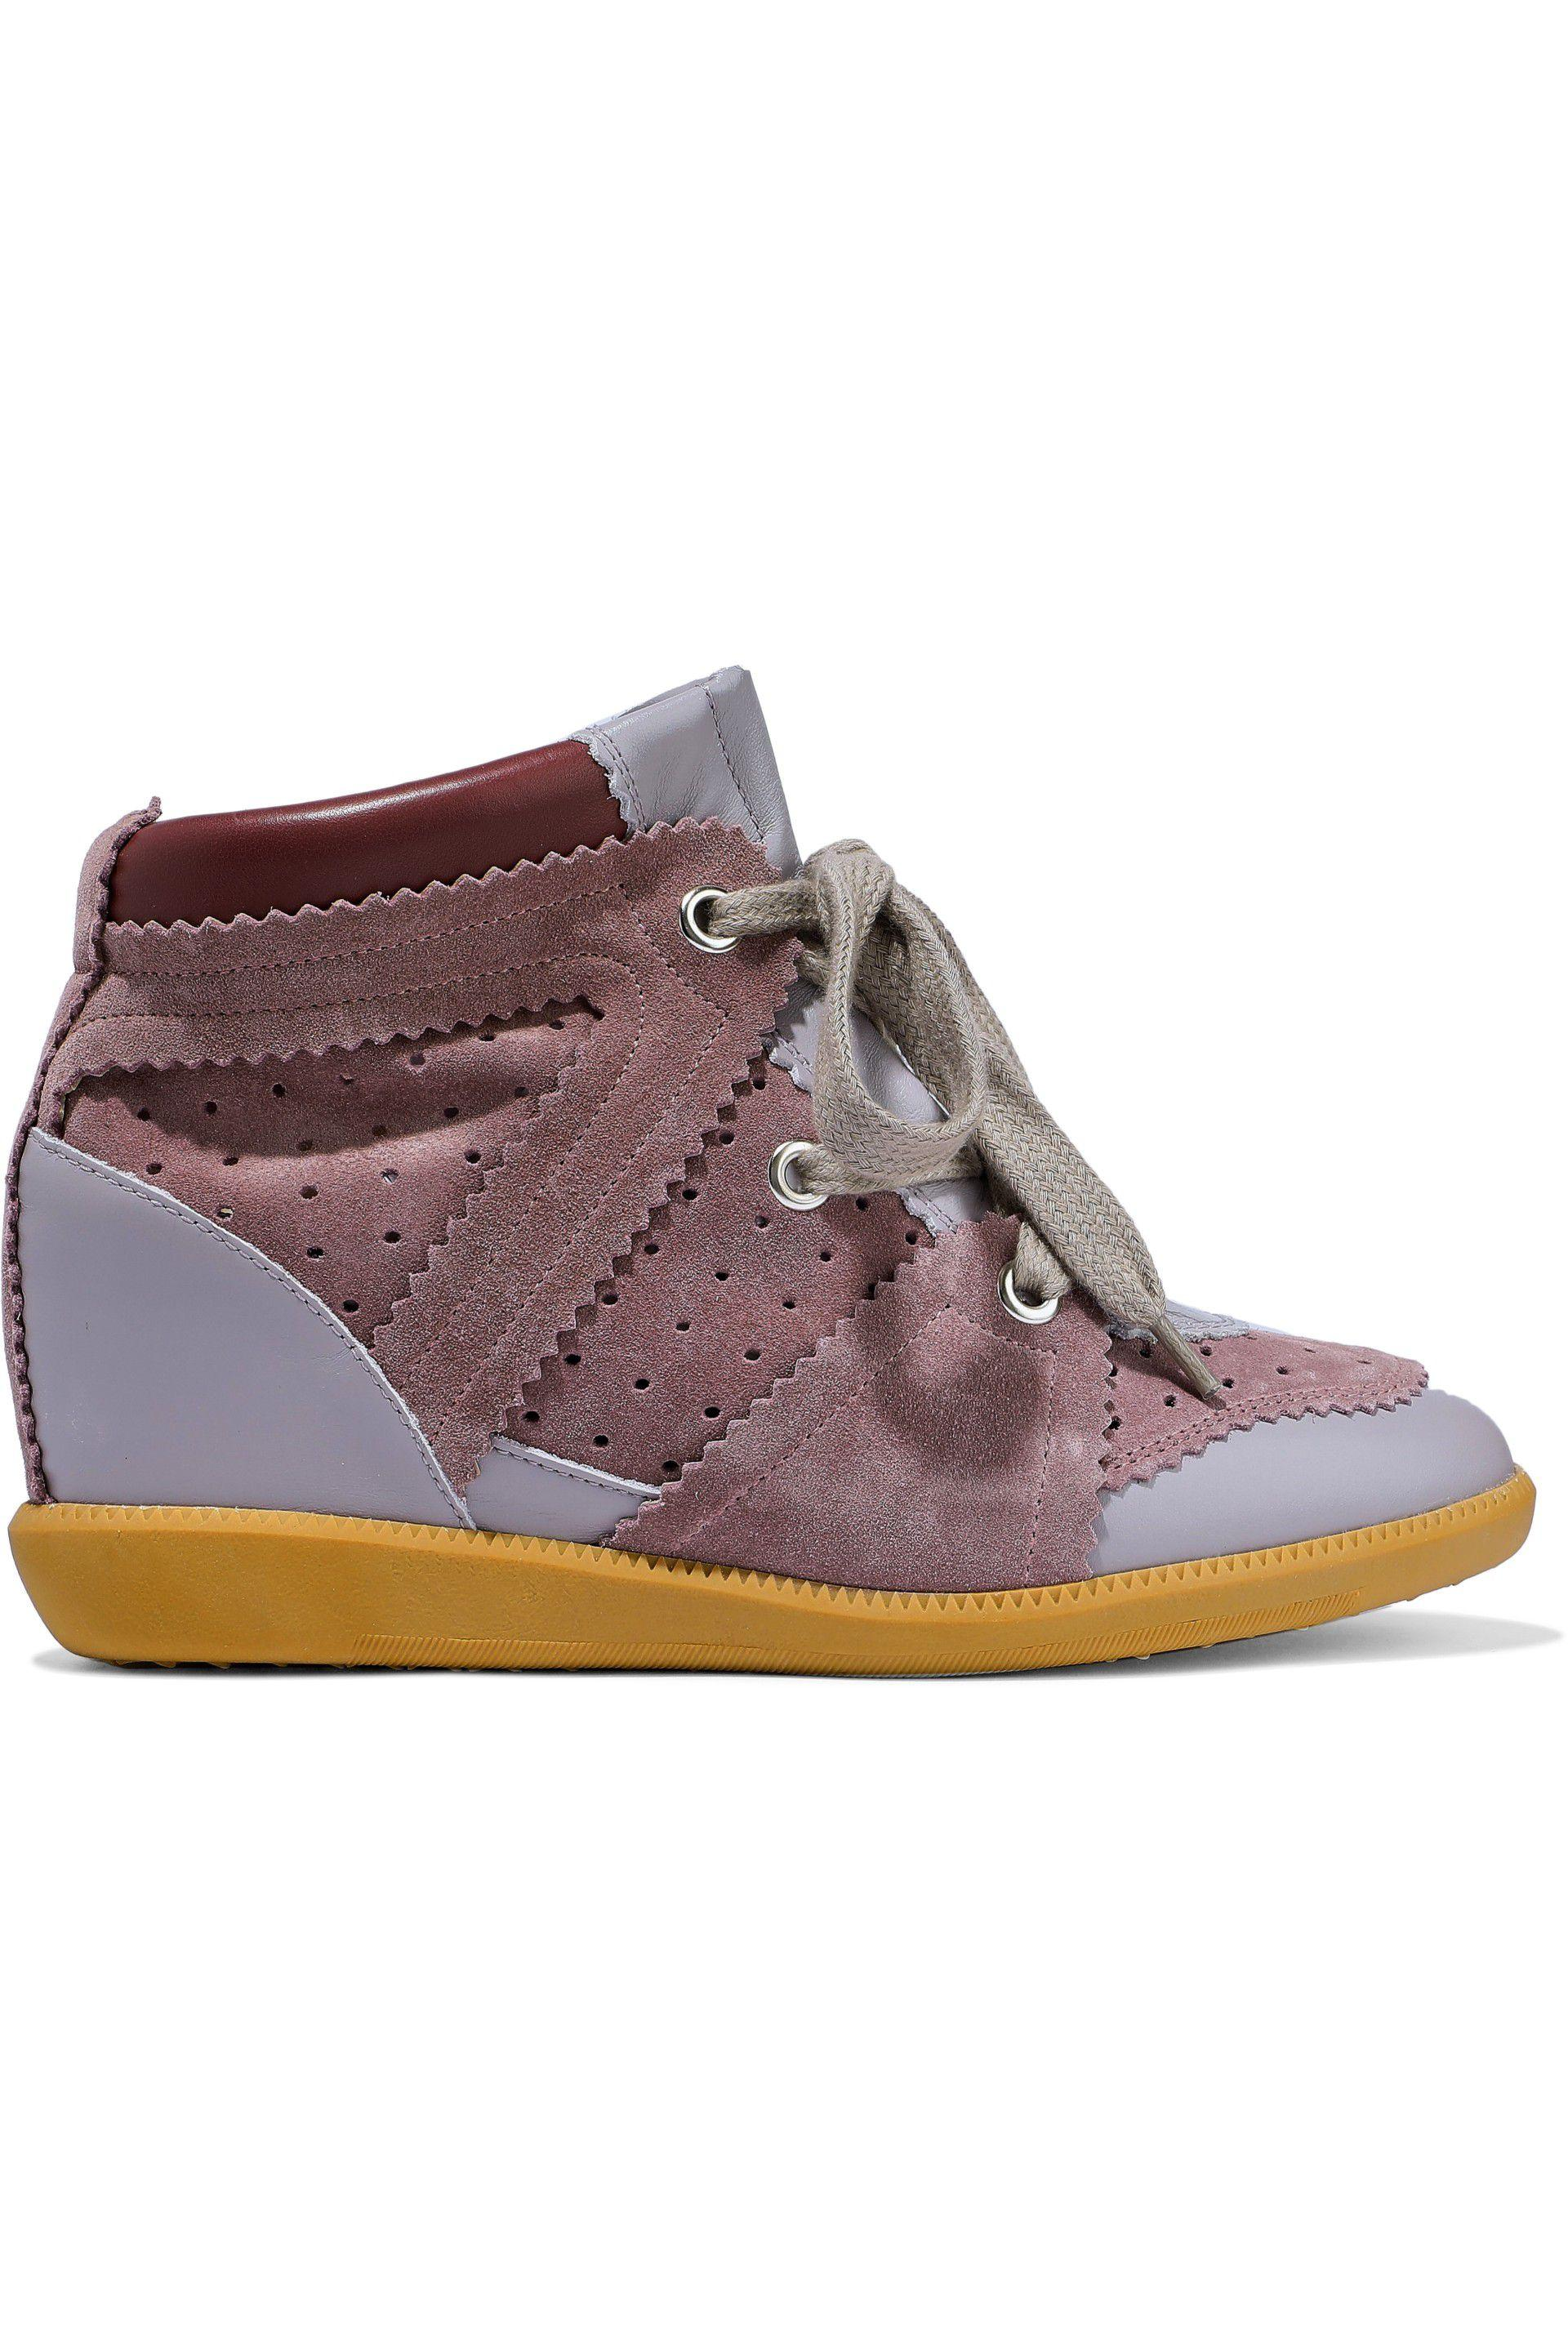 f87259205a0 Isabel Marant. Women's Purple Woman Betty Leather And Suede Wedge Sneakers  Lilac